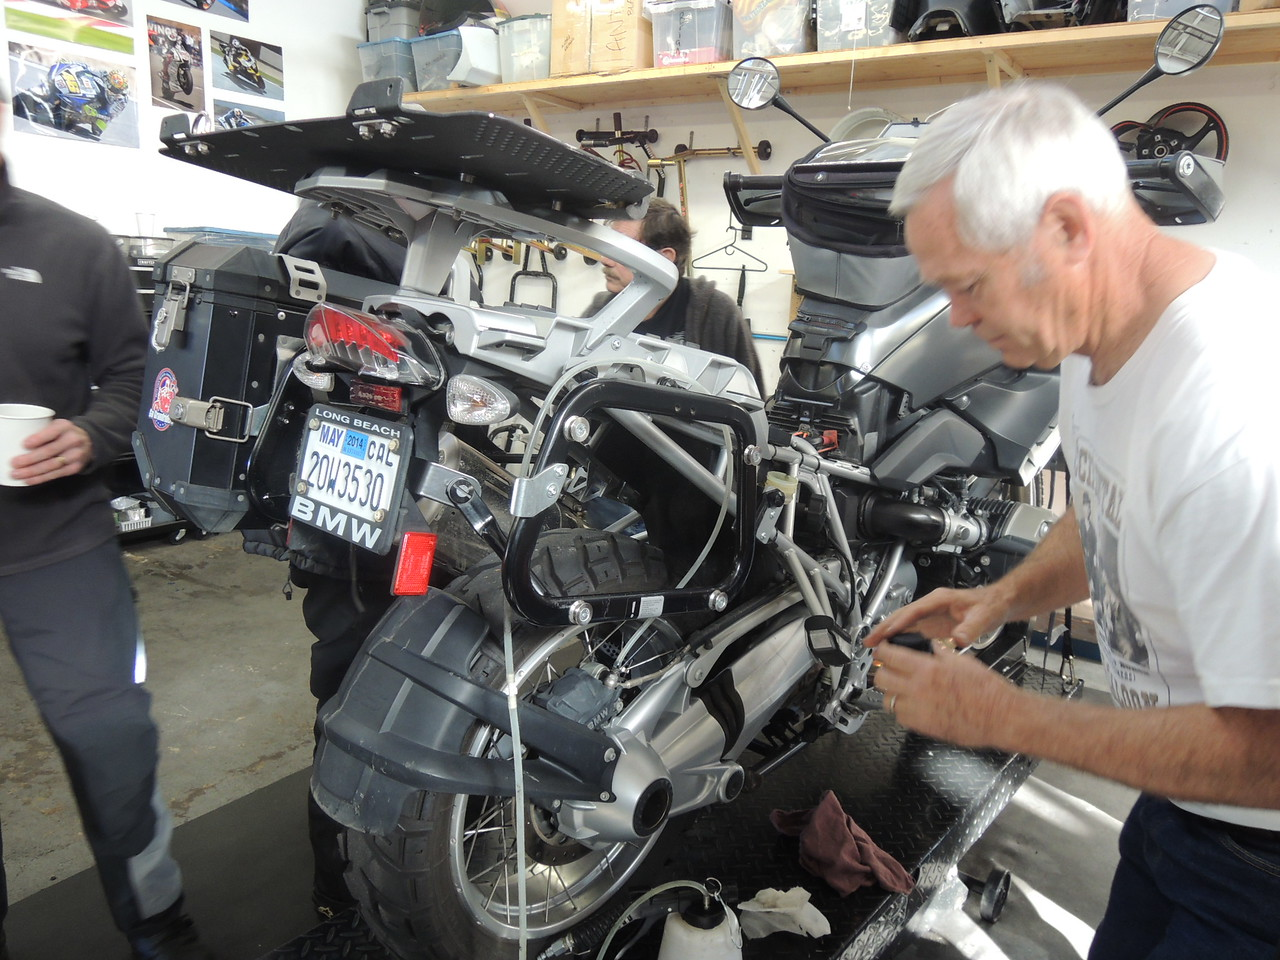 Russ Drake was next for the Periodic Brake Fluid Flush on his GS1200.